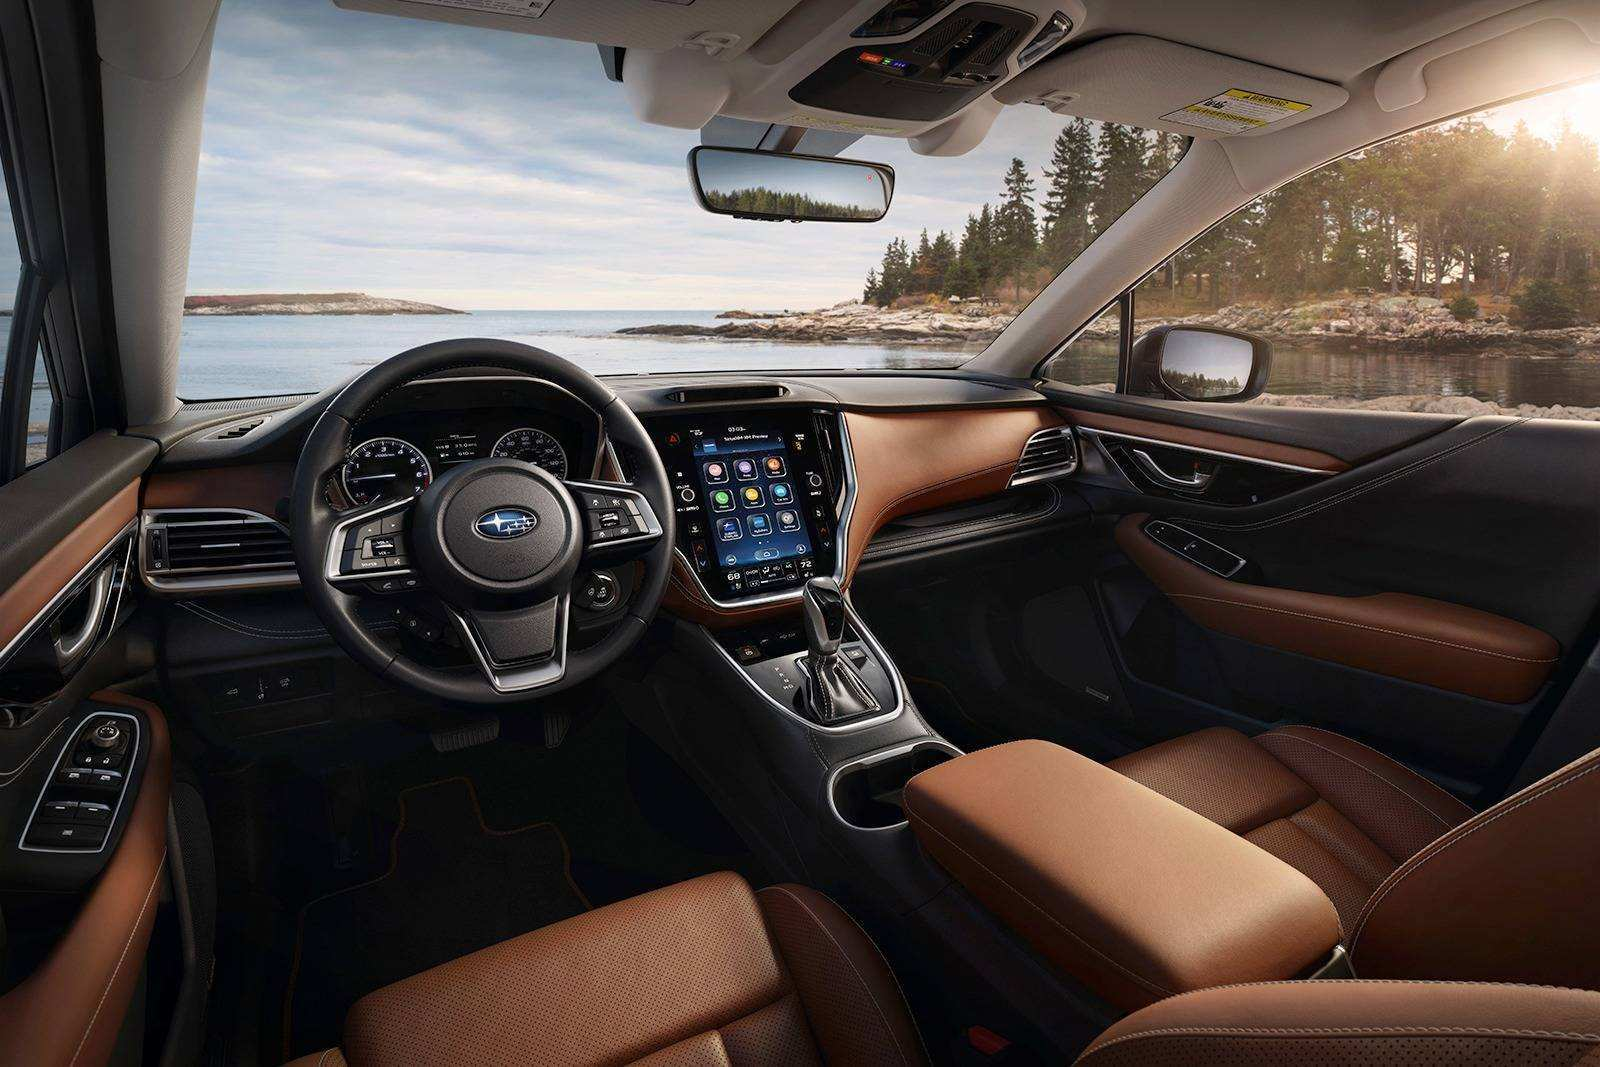 48 Best Review 2020 Subaru Outback Availability Spesification by 2020 Subaru Outback Availability